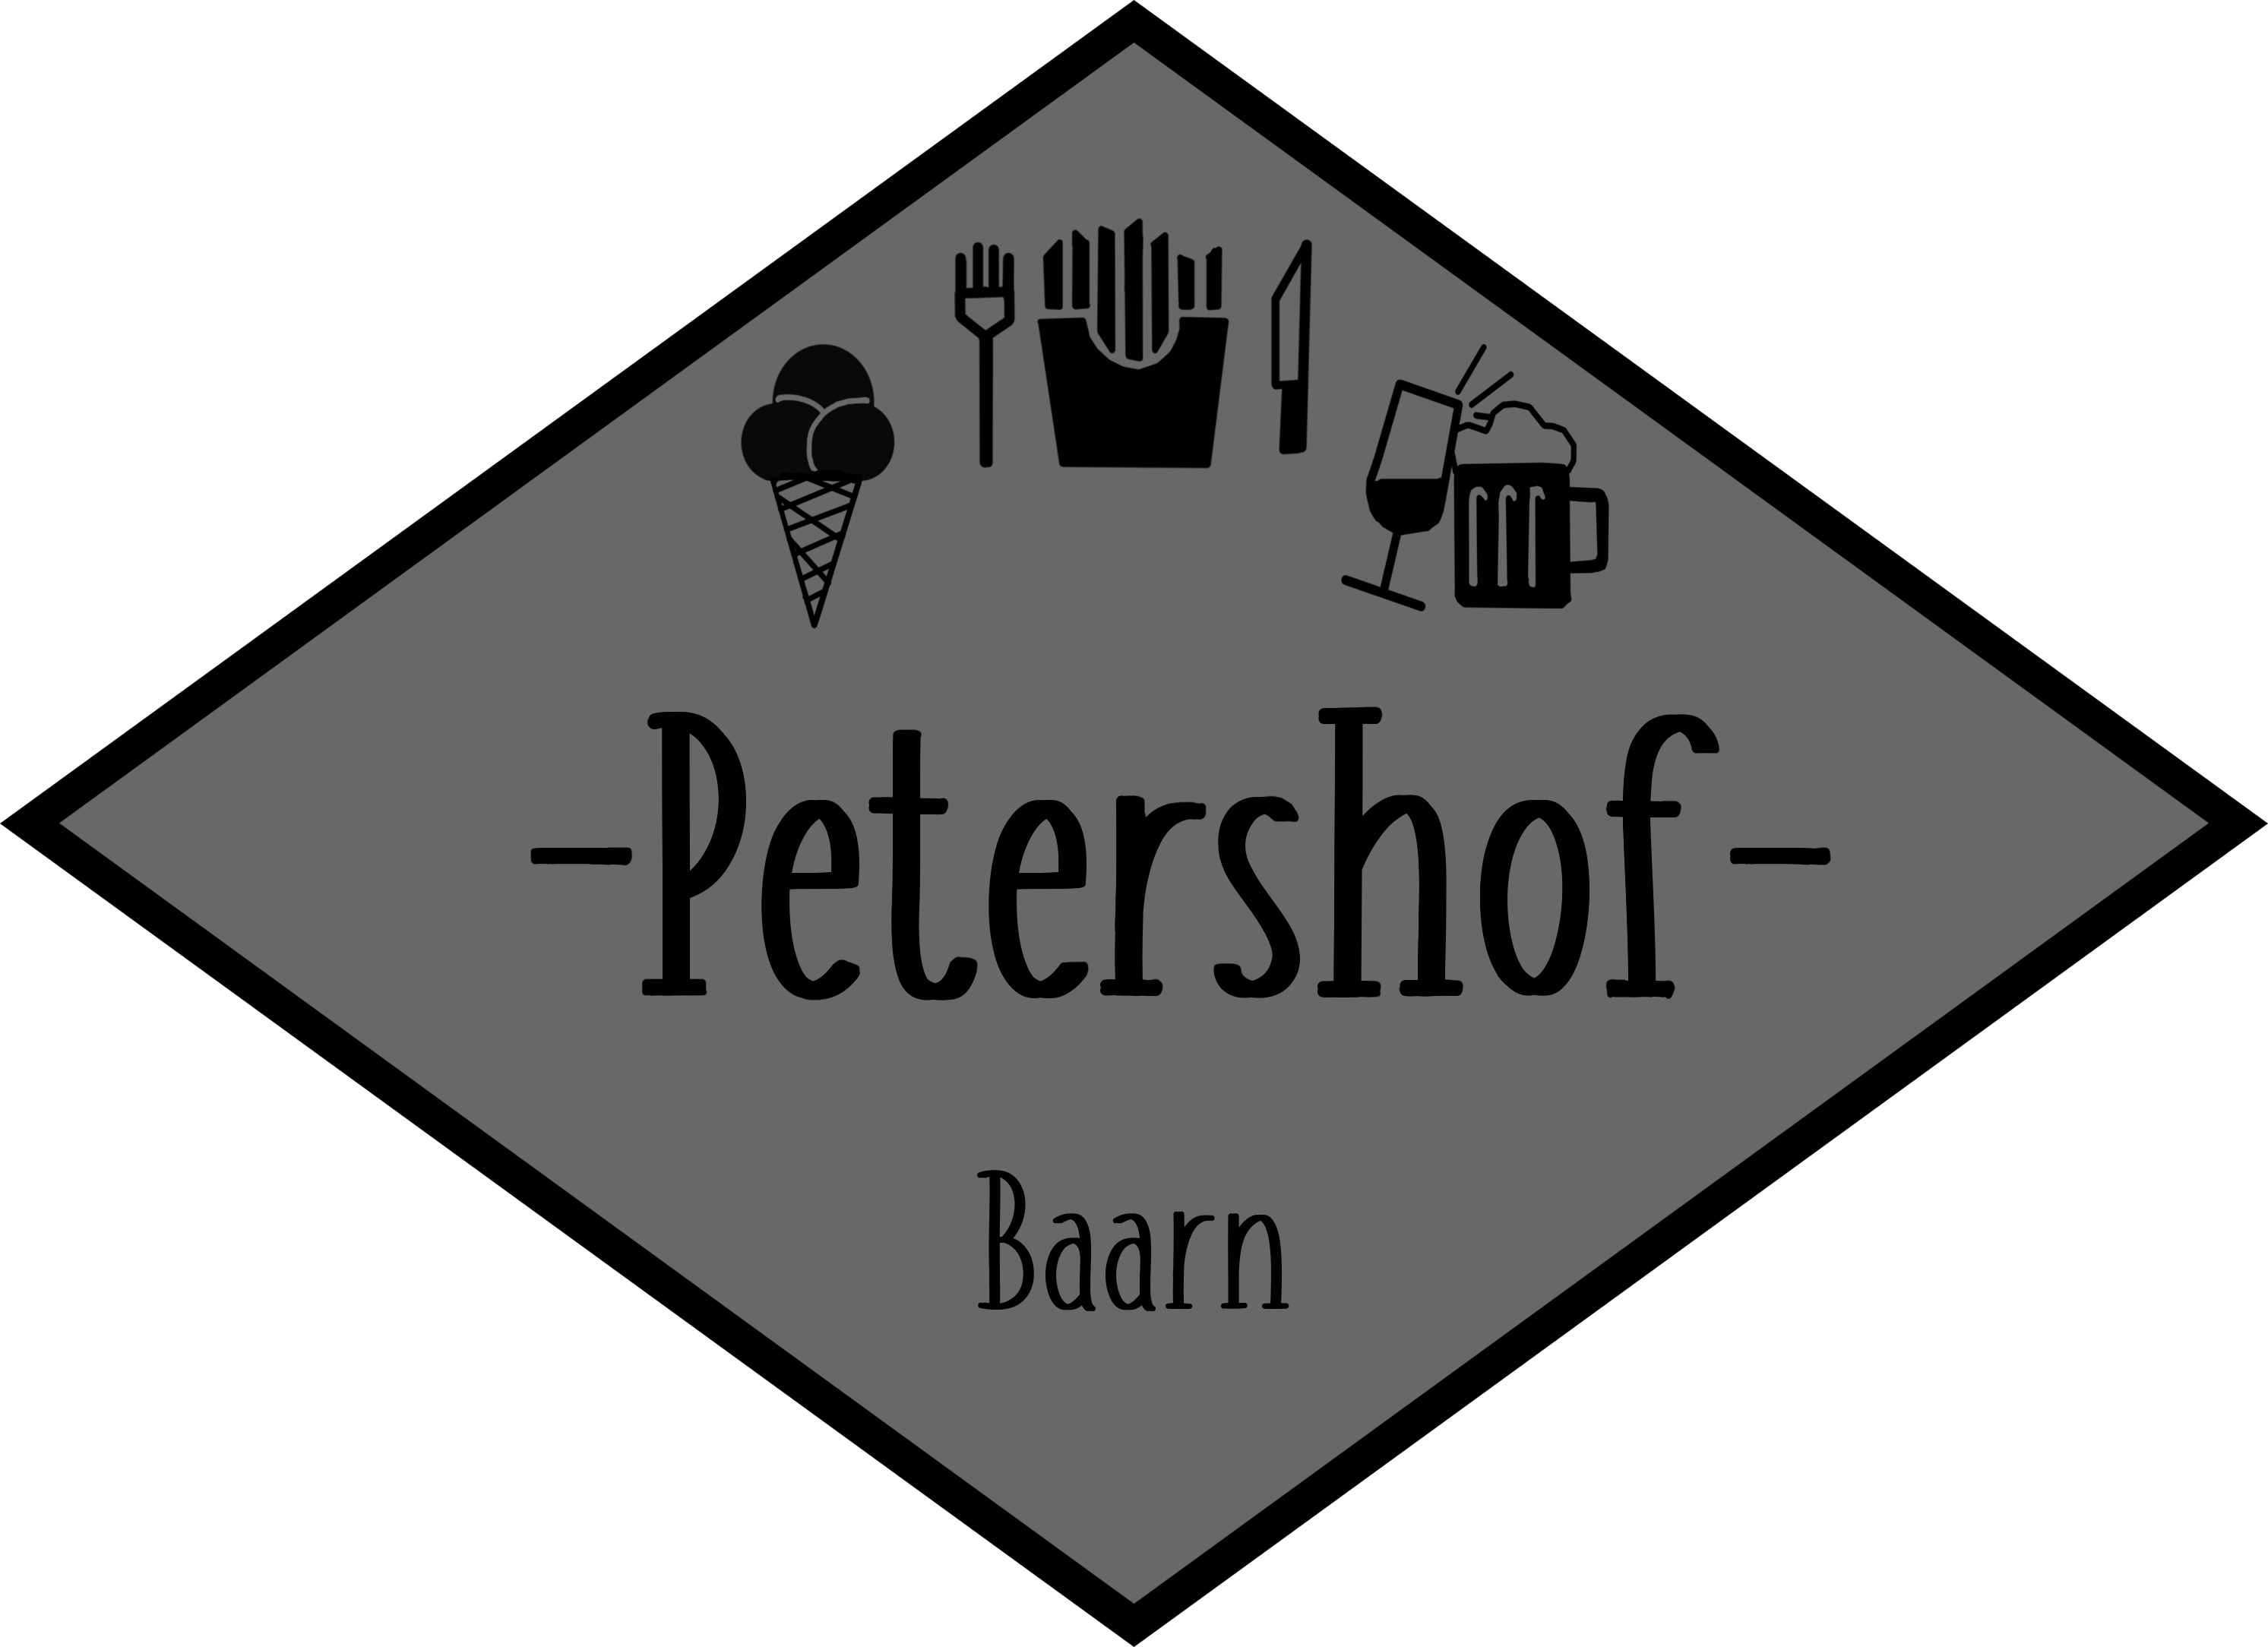 Petershof